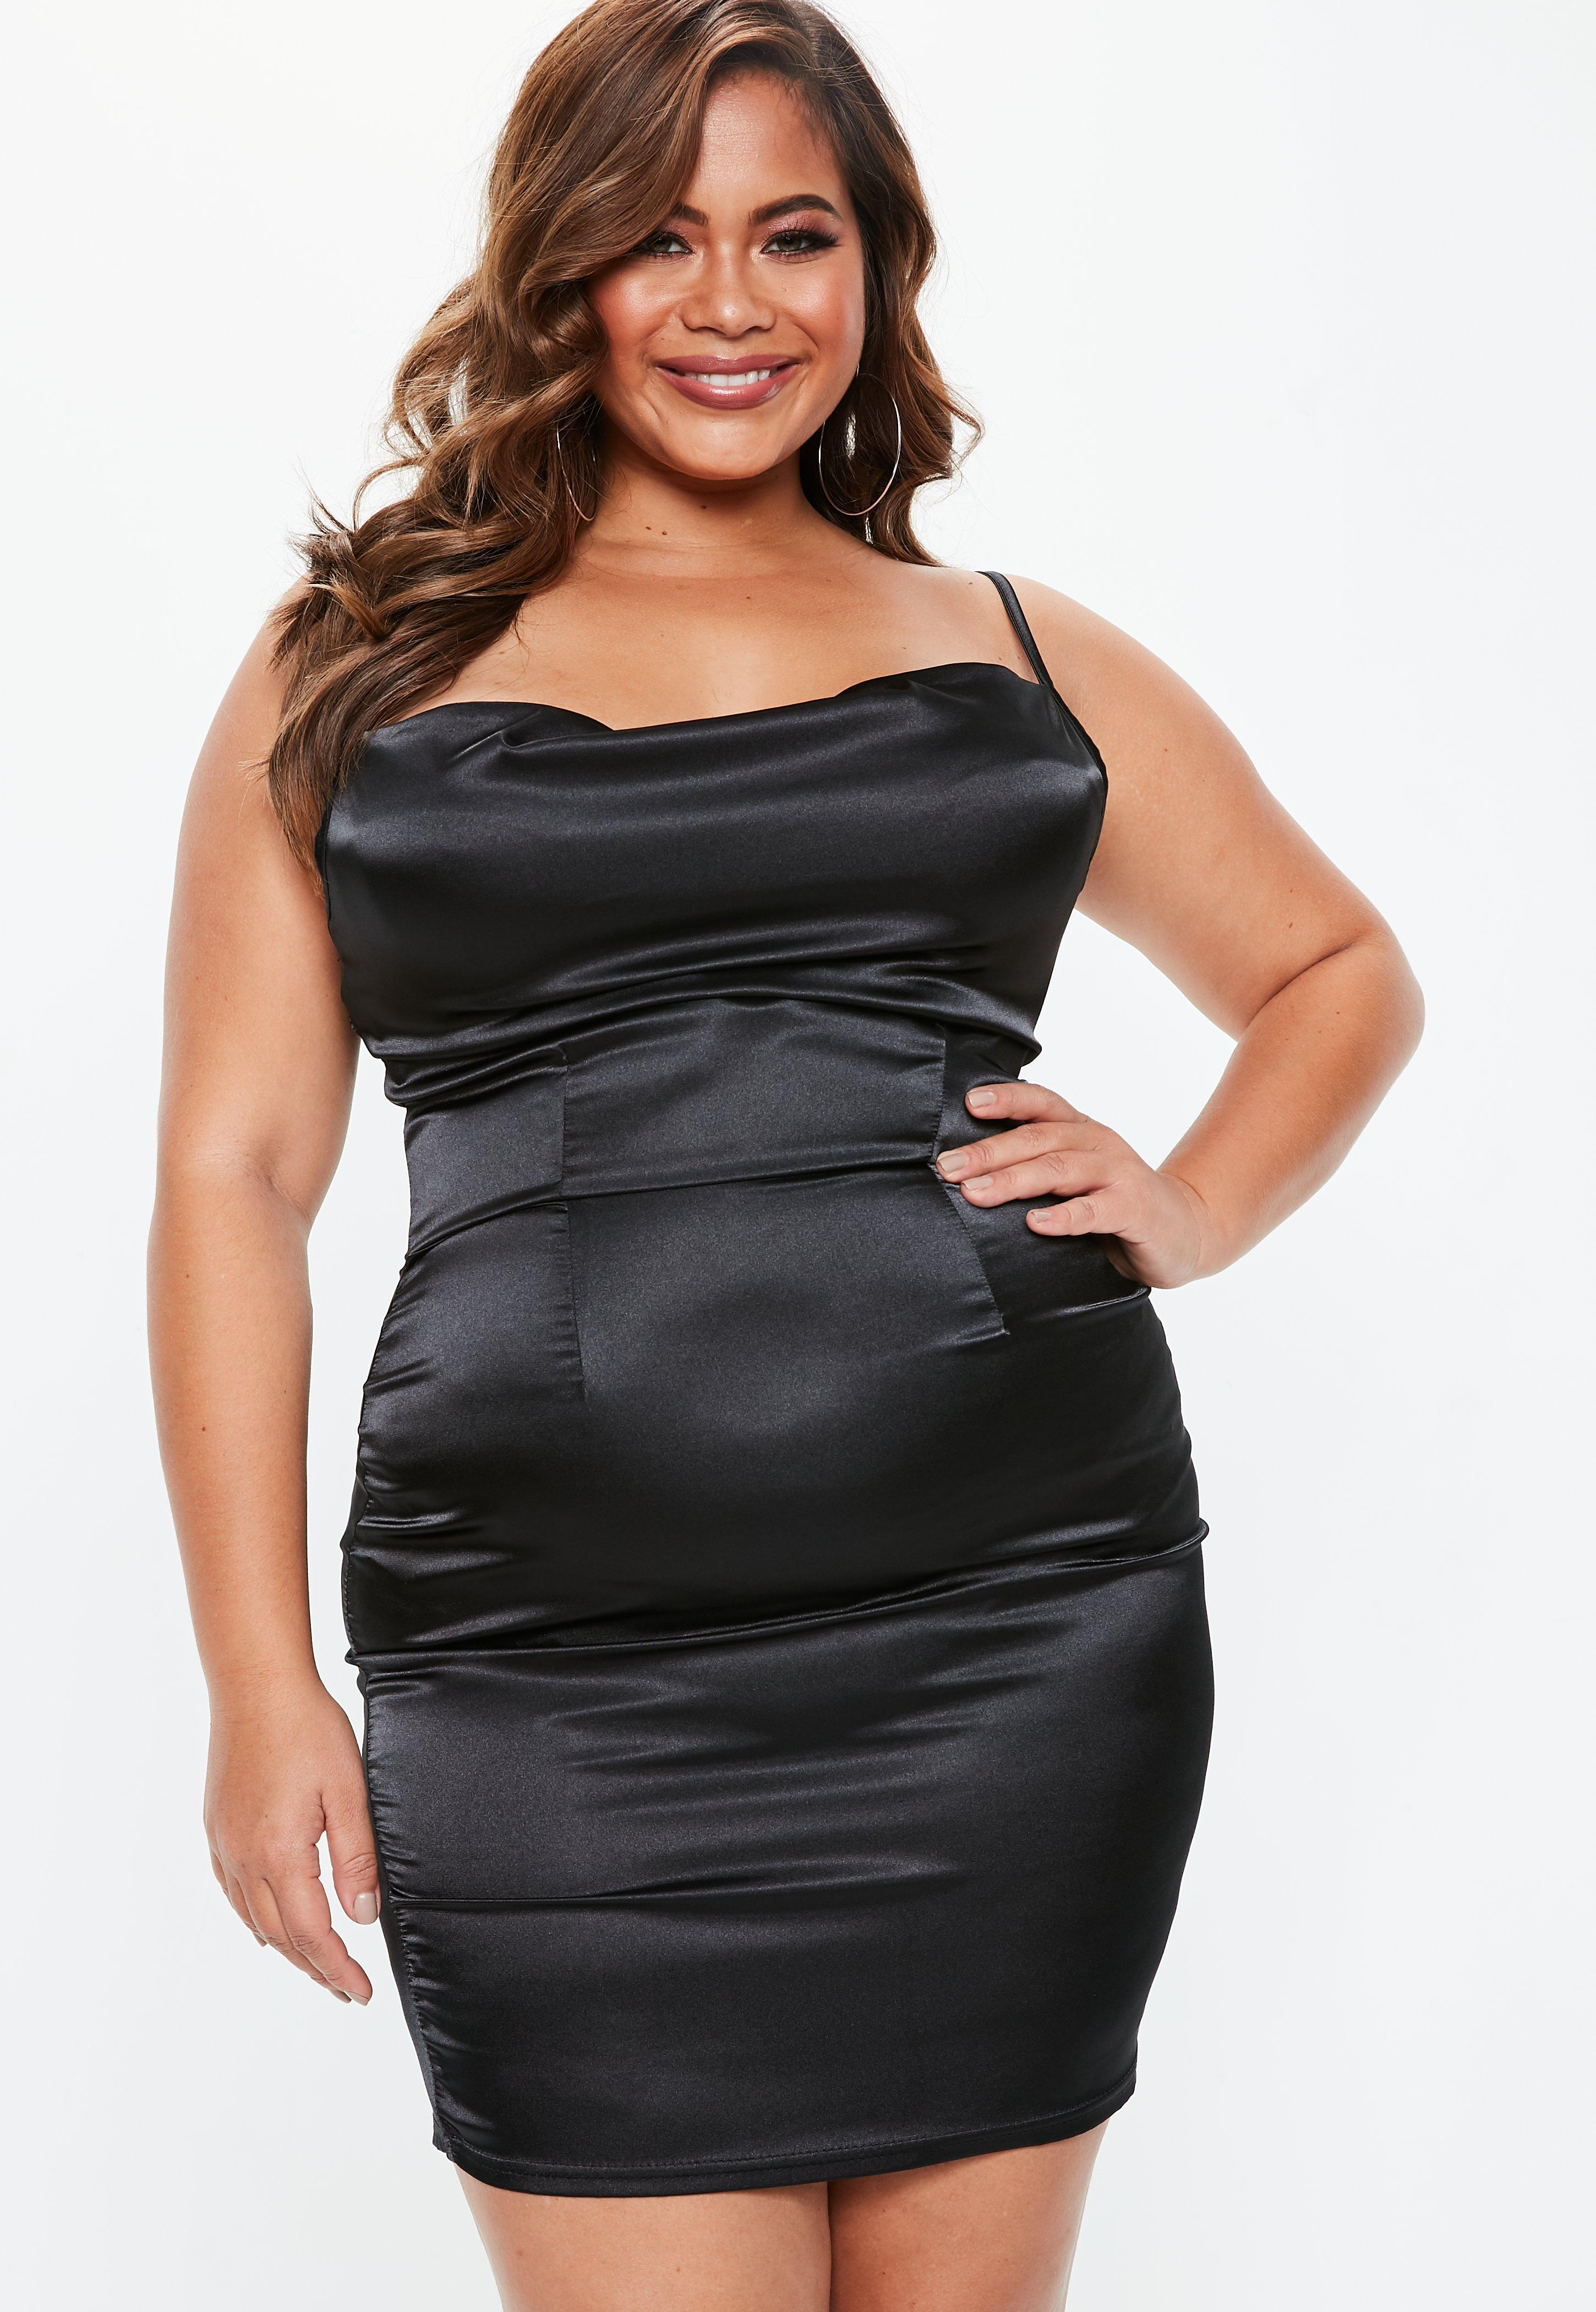 8bd7a16279f Lyst - Missguided Plus Size Black Satin Cowl Neck Dress in Black